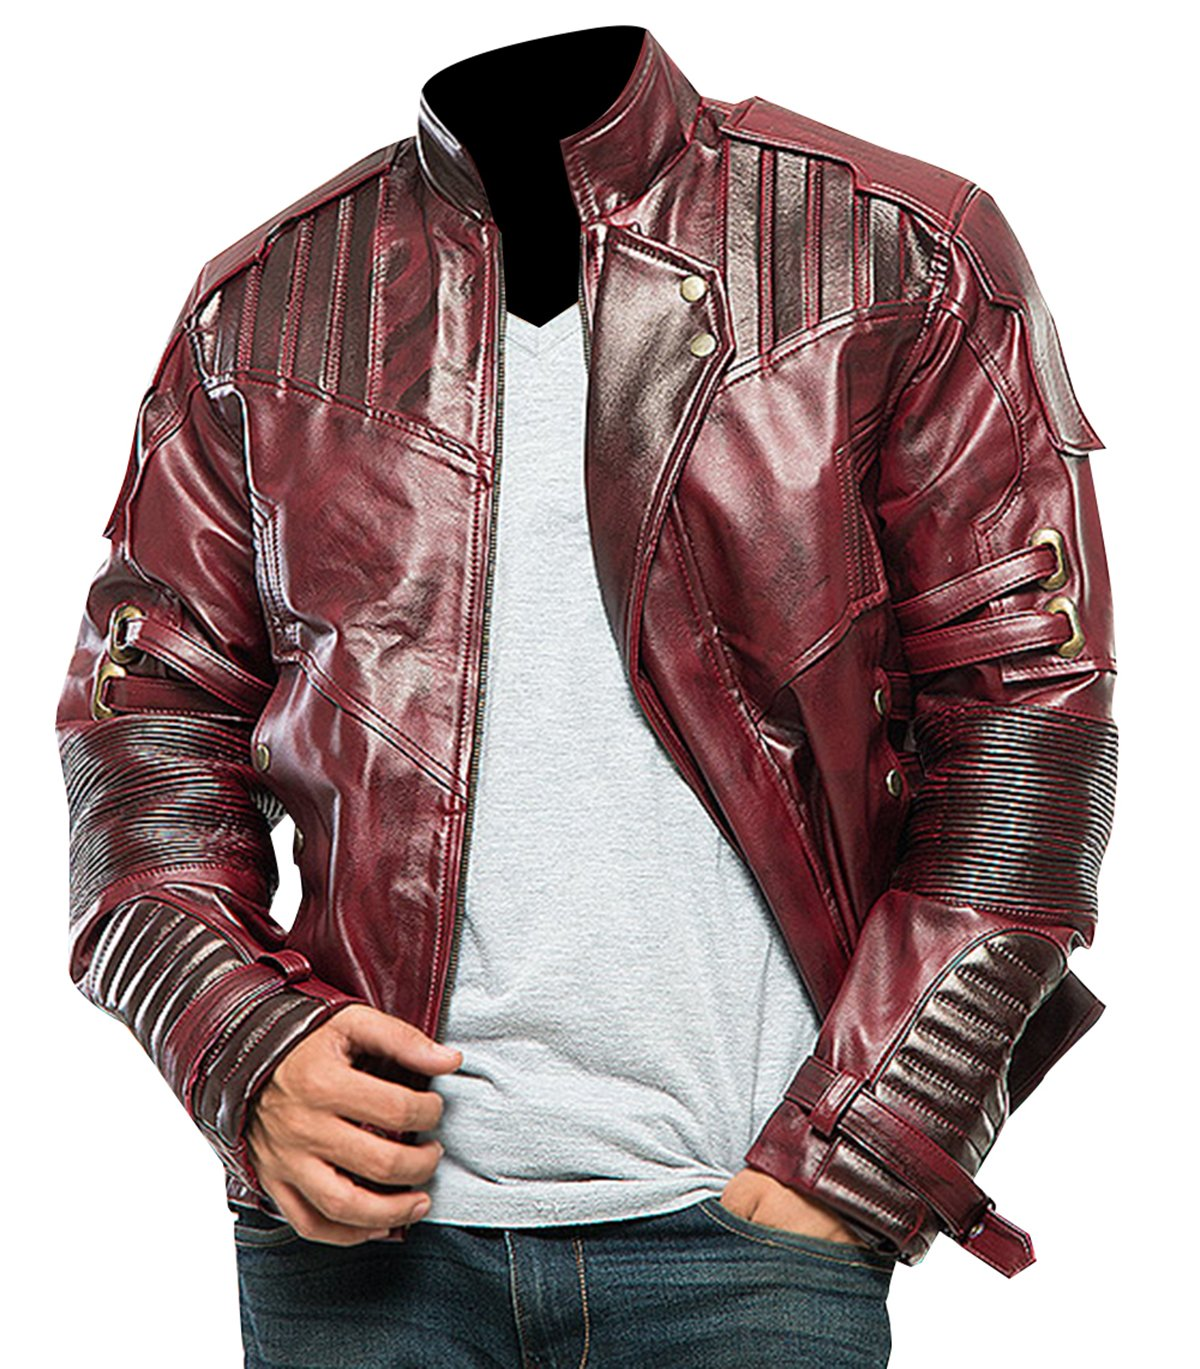 Guardians of the Galaxy Vol 2 Star Lord Peter Quill Synthetic Jacket by Spazeup